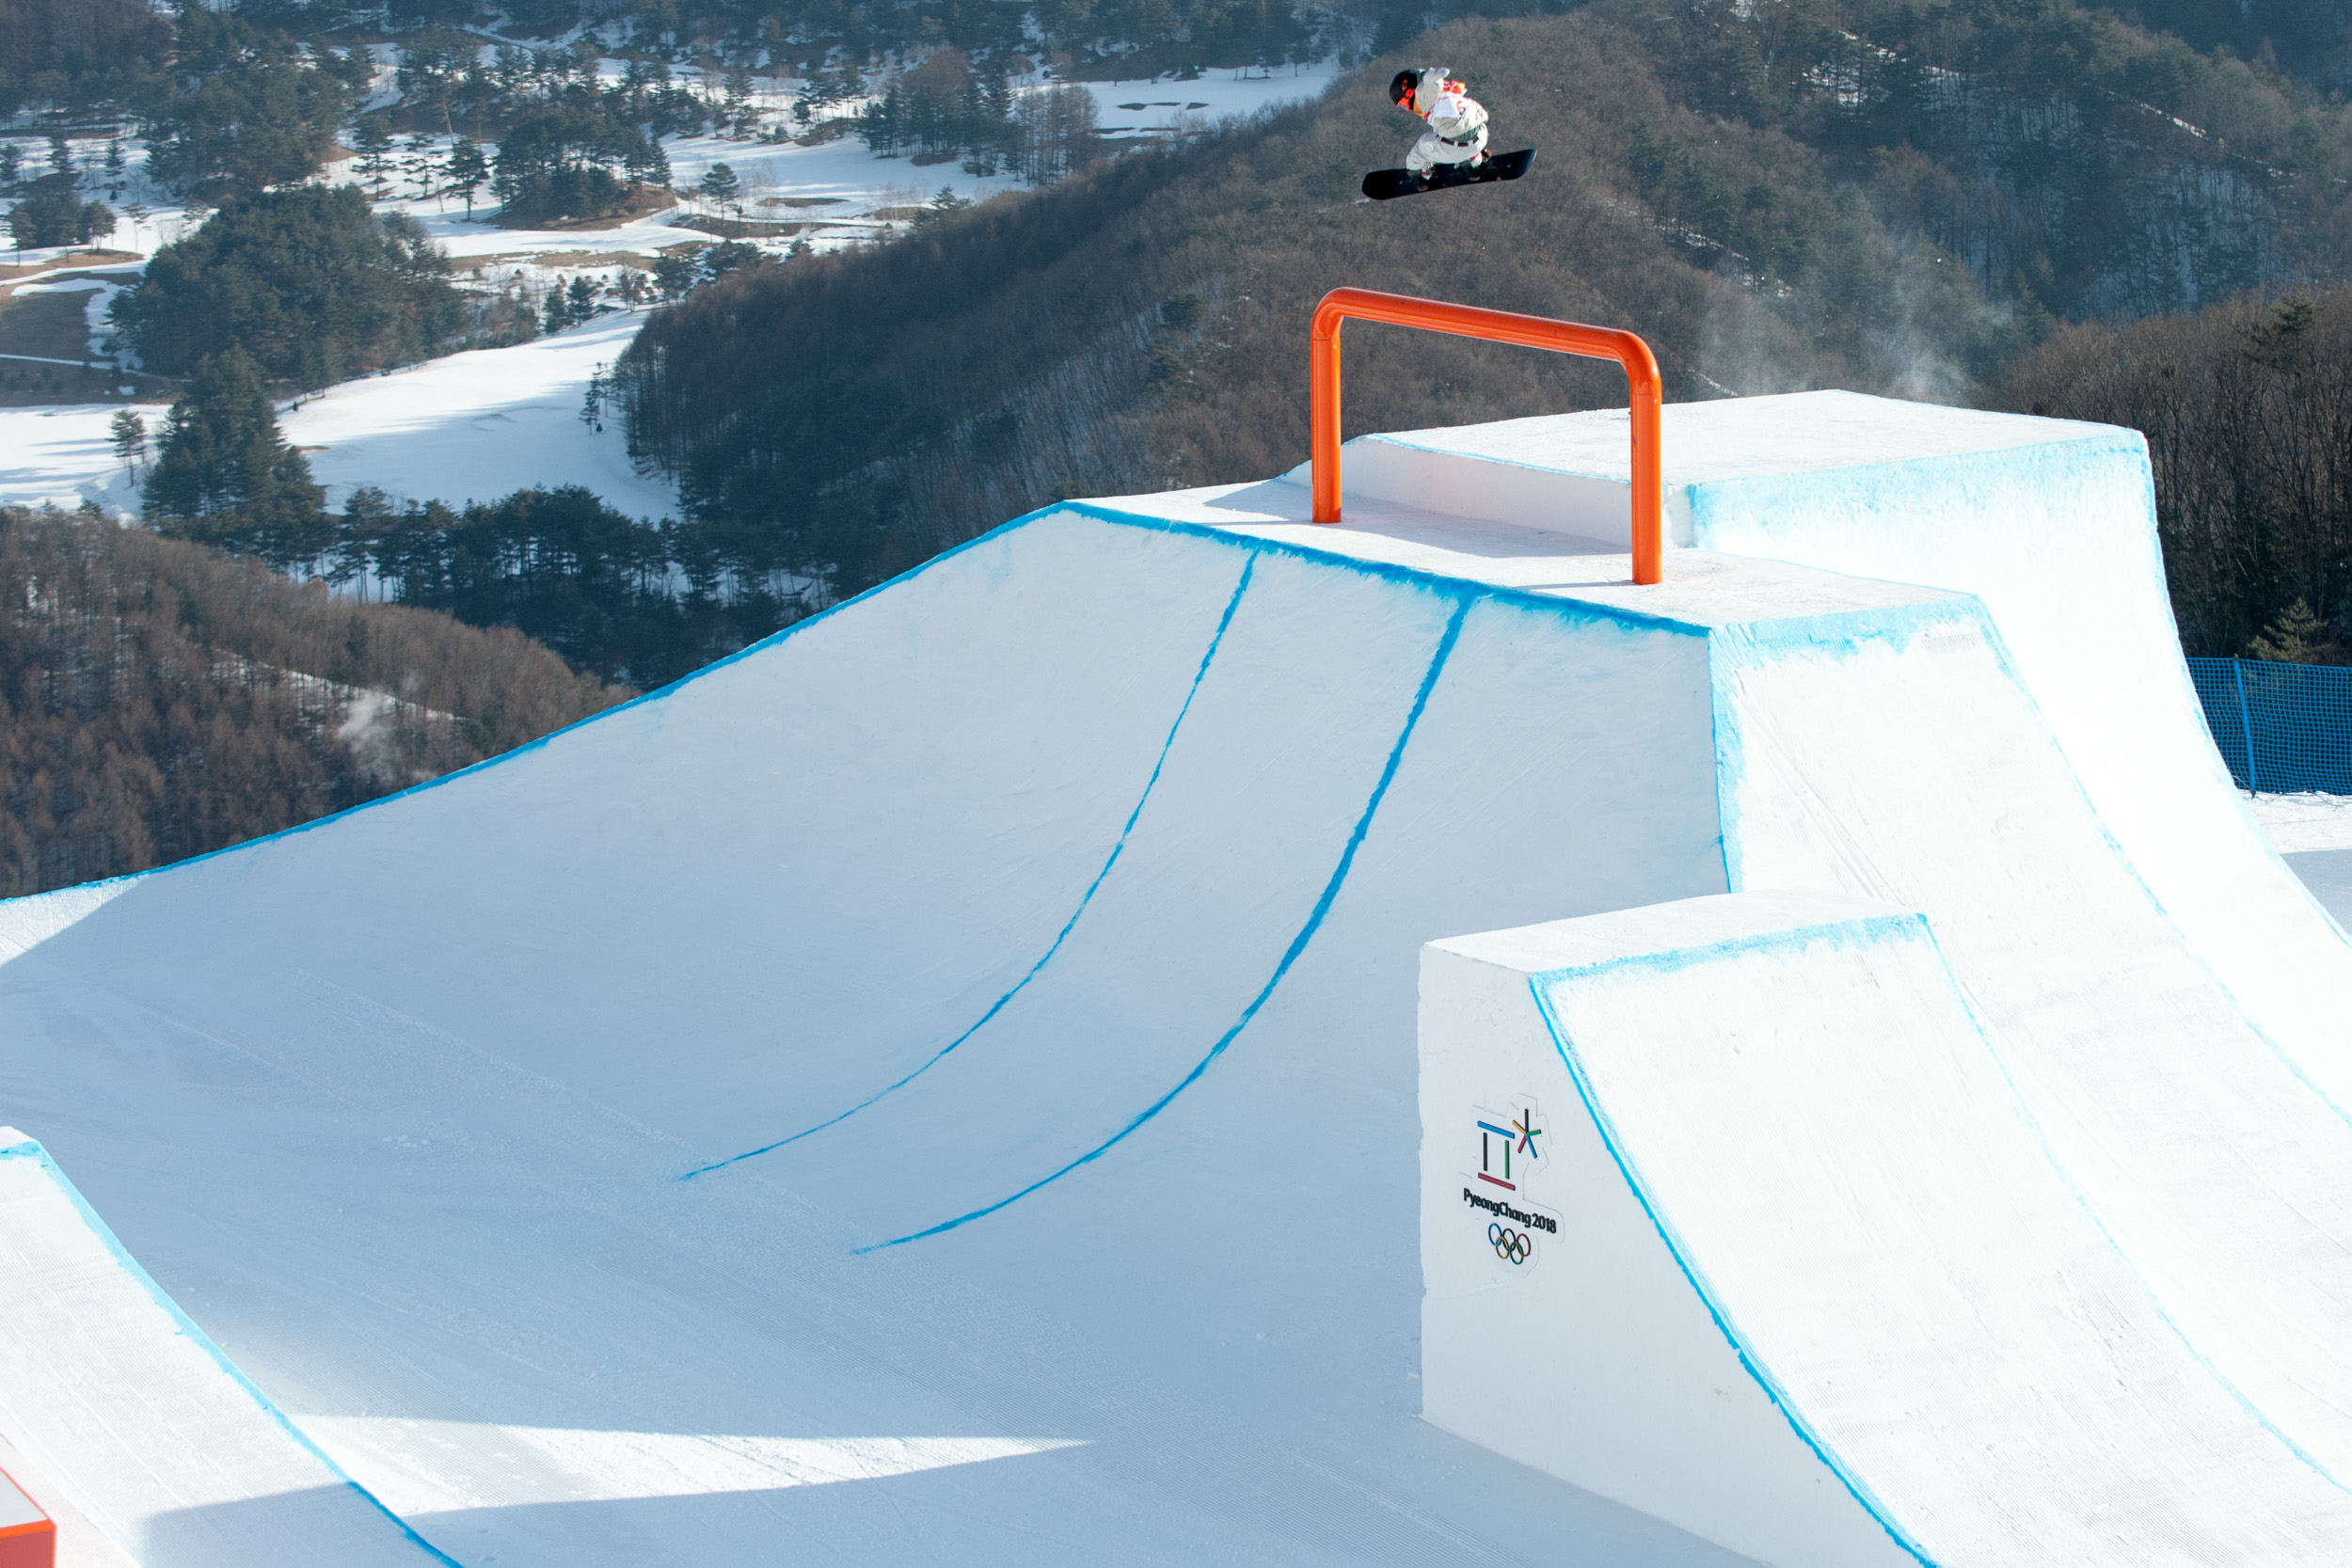 Olympics - Snowboarding: Norway and Canada dominate men's snowboard slopestyle qualification